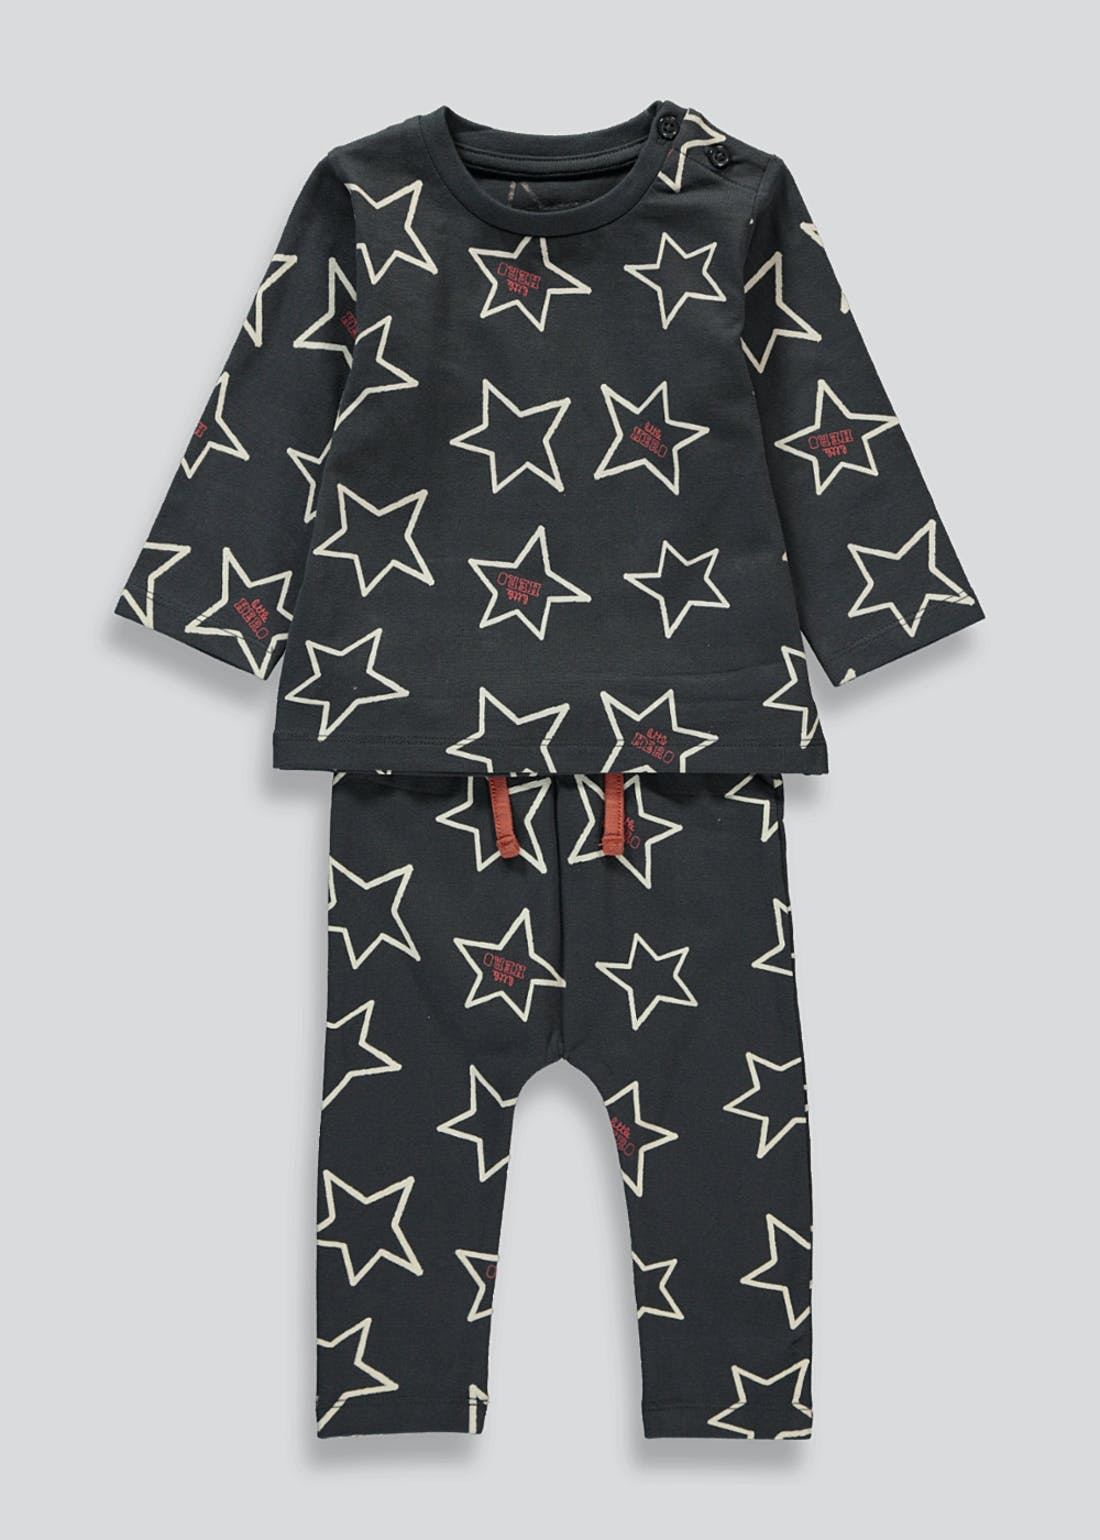 Boys Star Print Top & Leggings Set (Newborn-23mths)